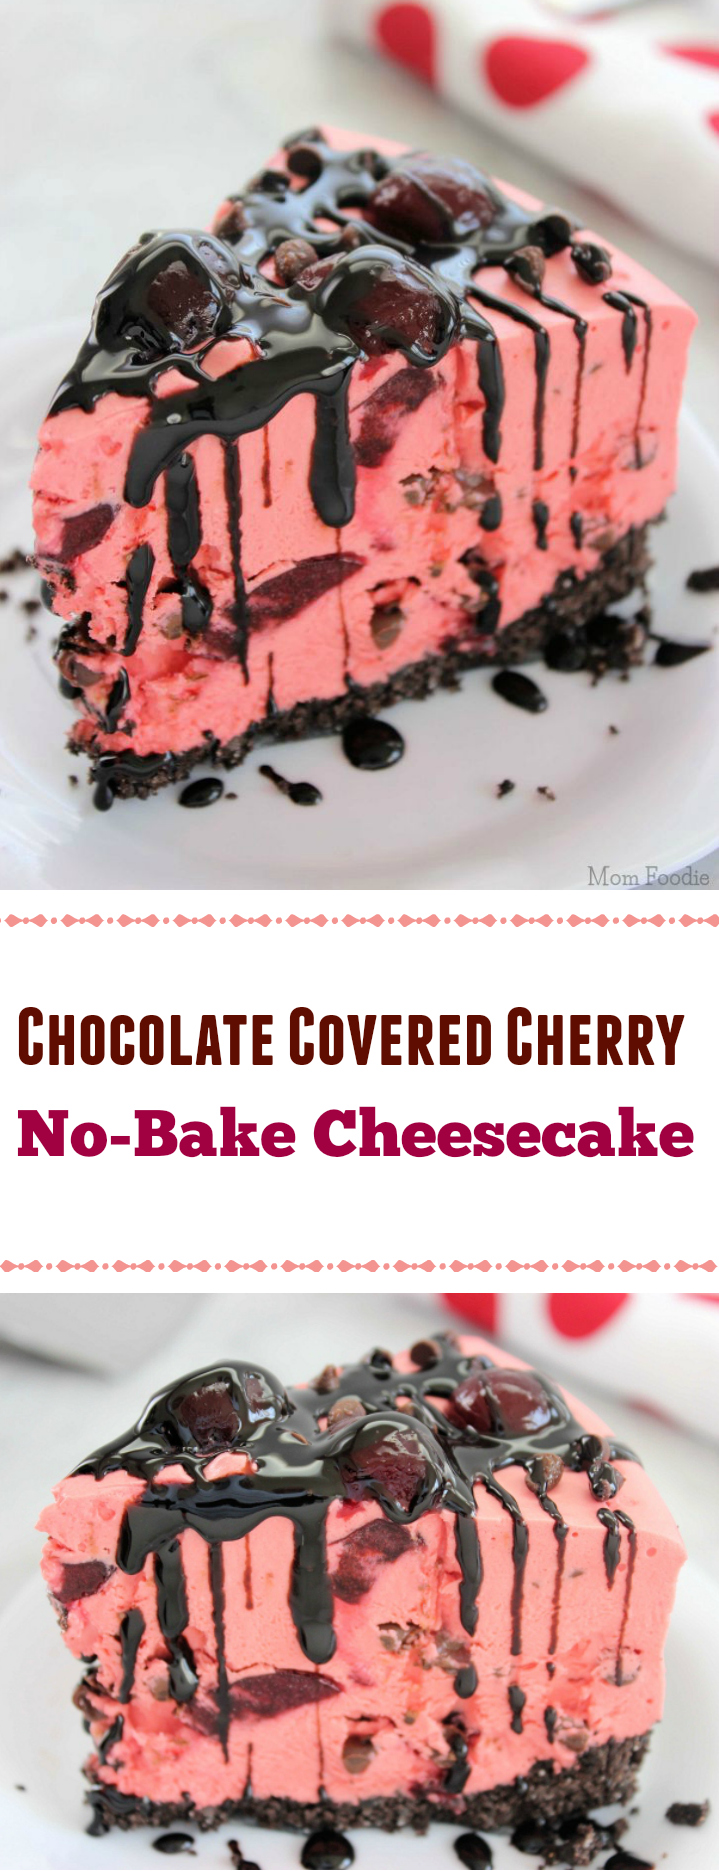 Chocolate Covered Cherry No-Bake Cheesecake Dessert Recipe